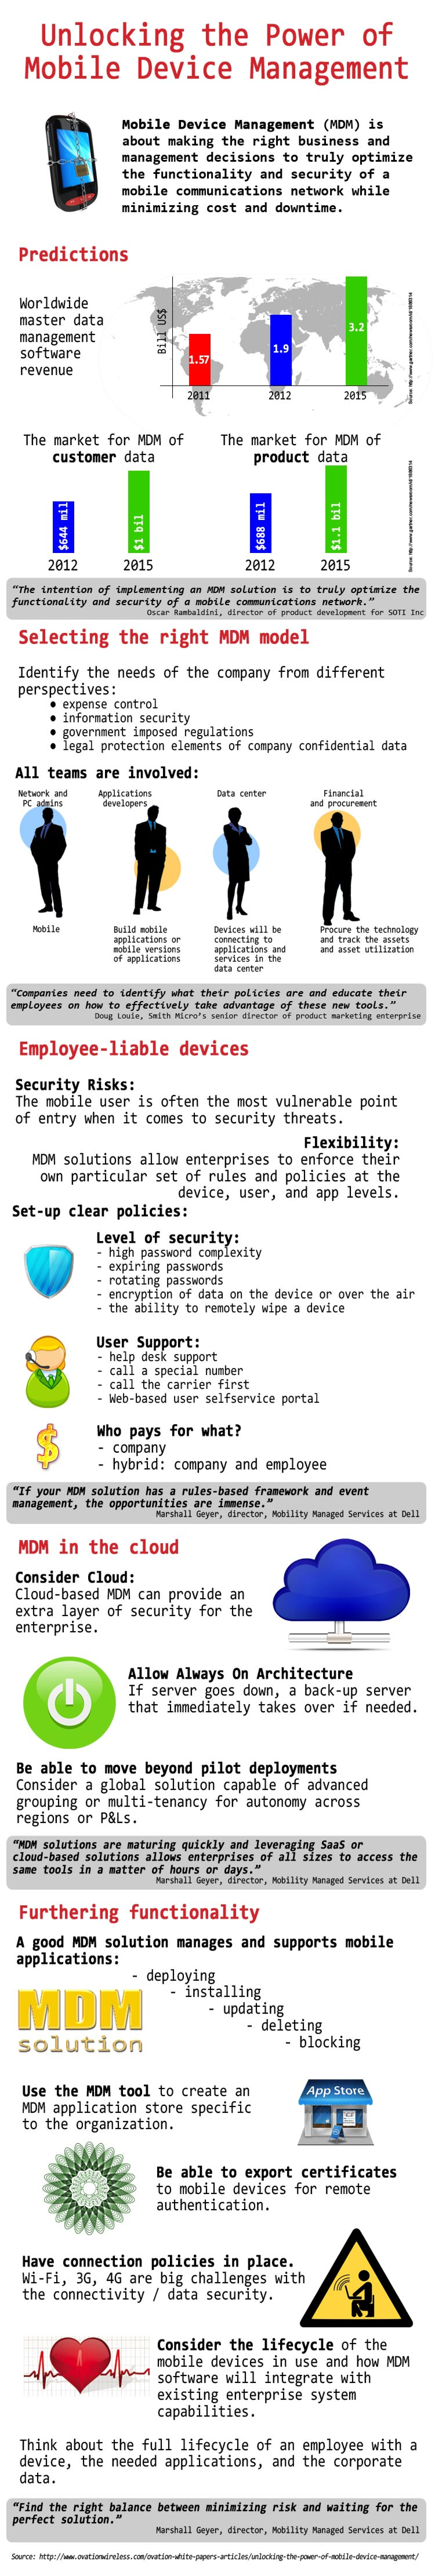 Unlocking the Power of MDM Infographic Infographic